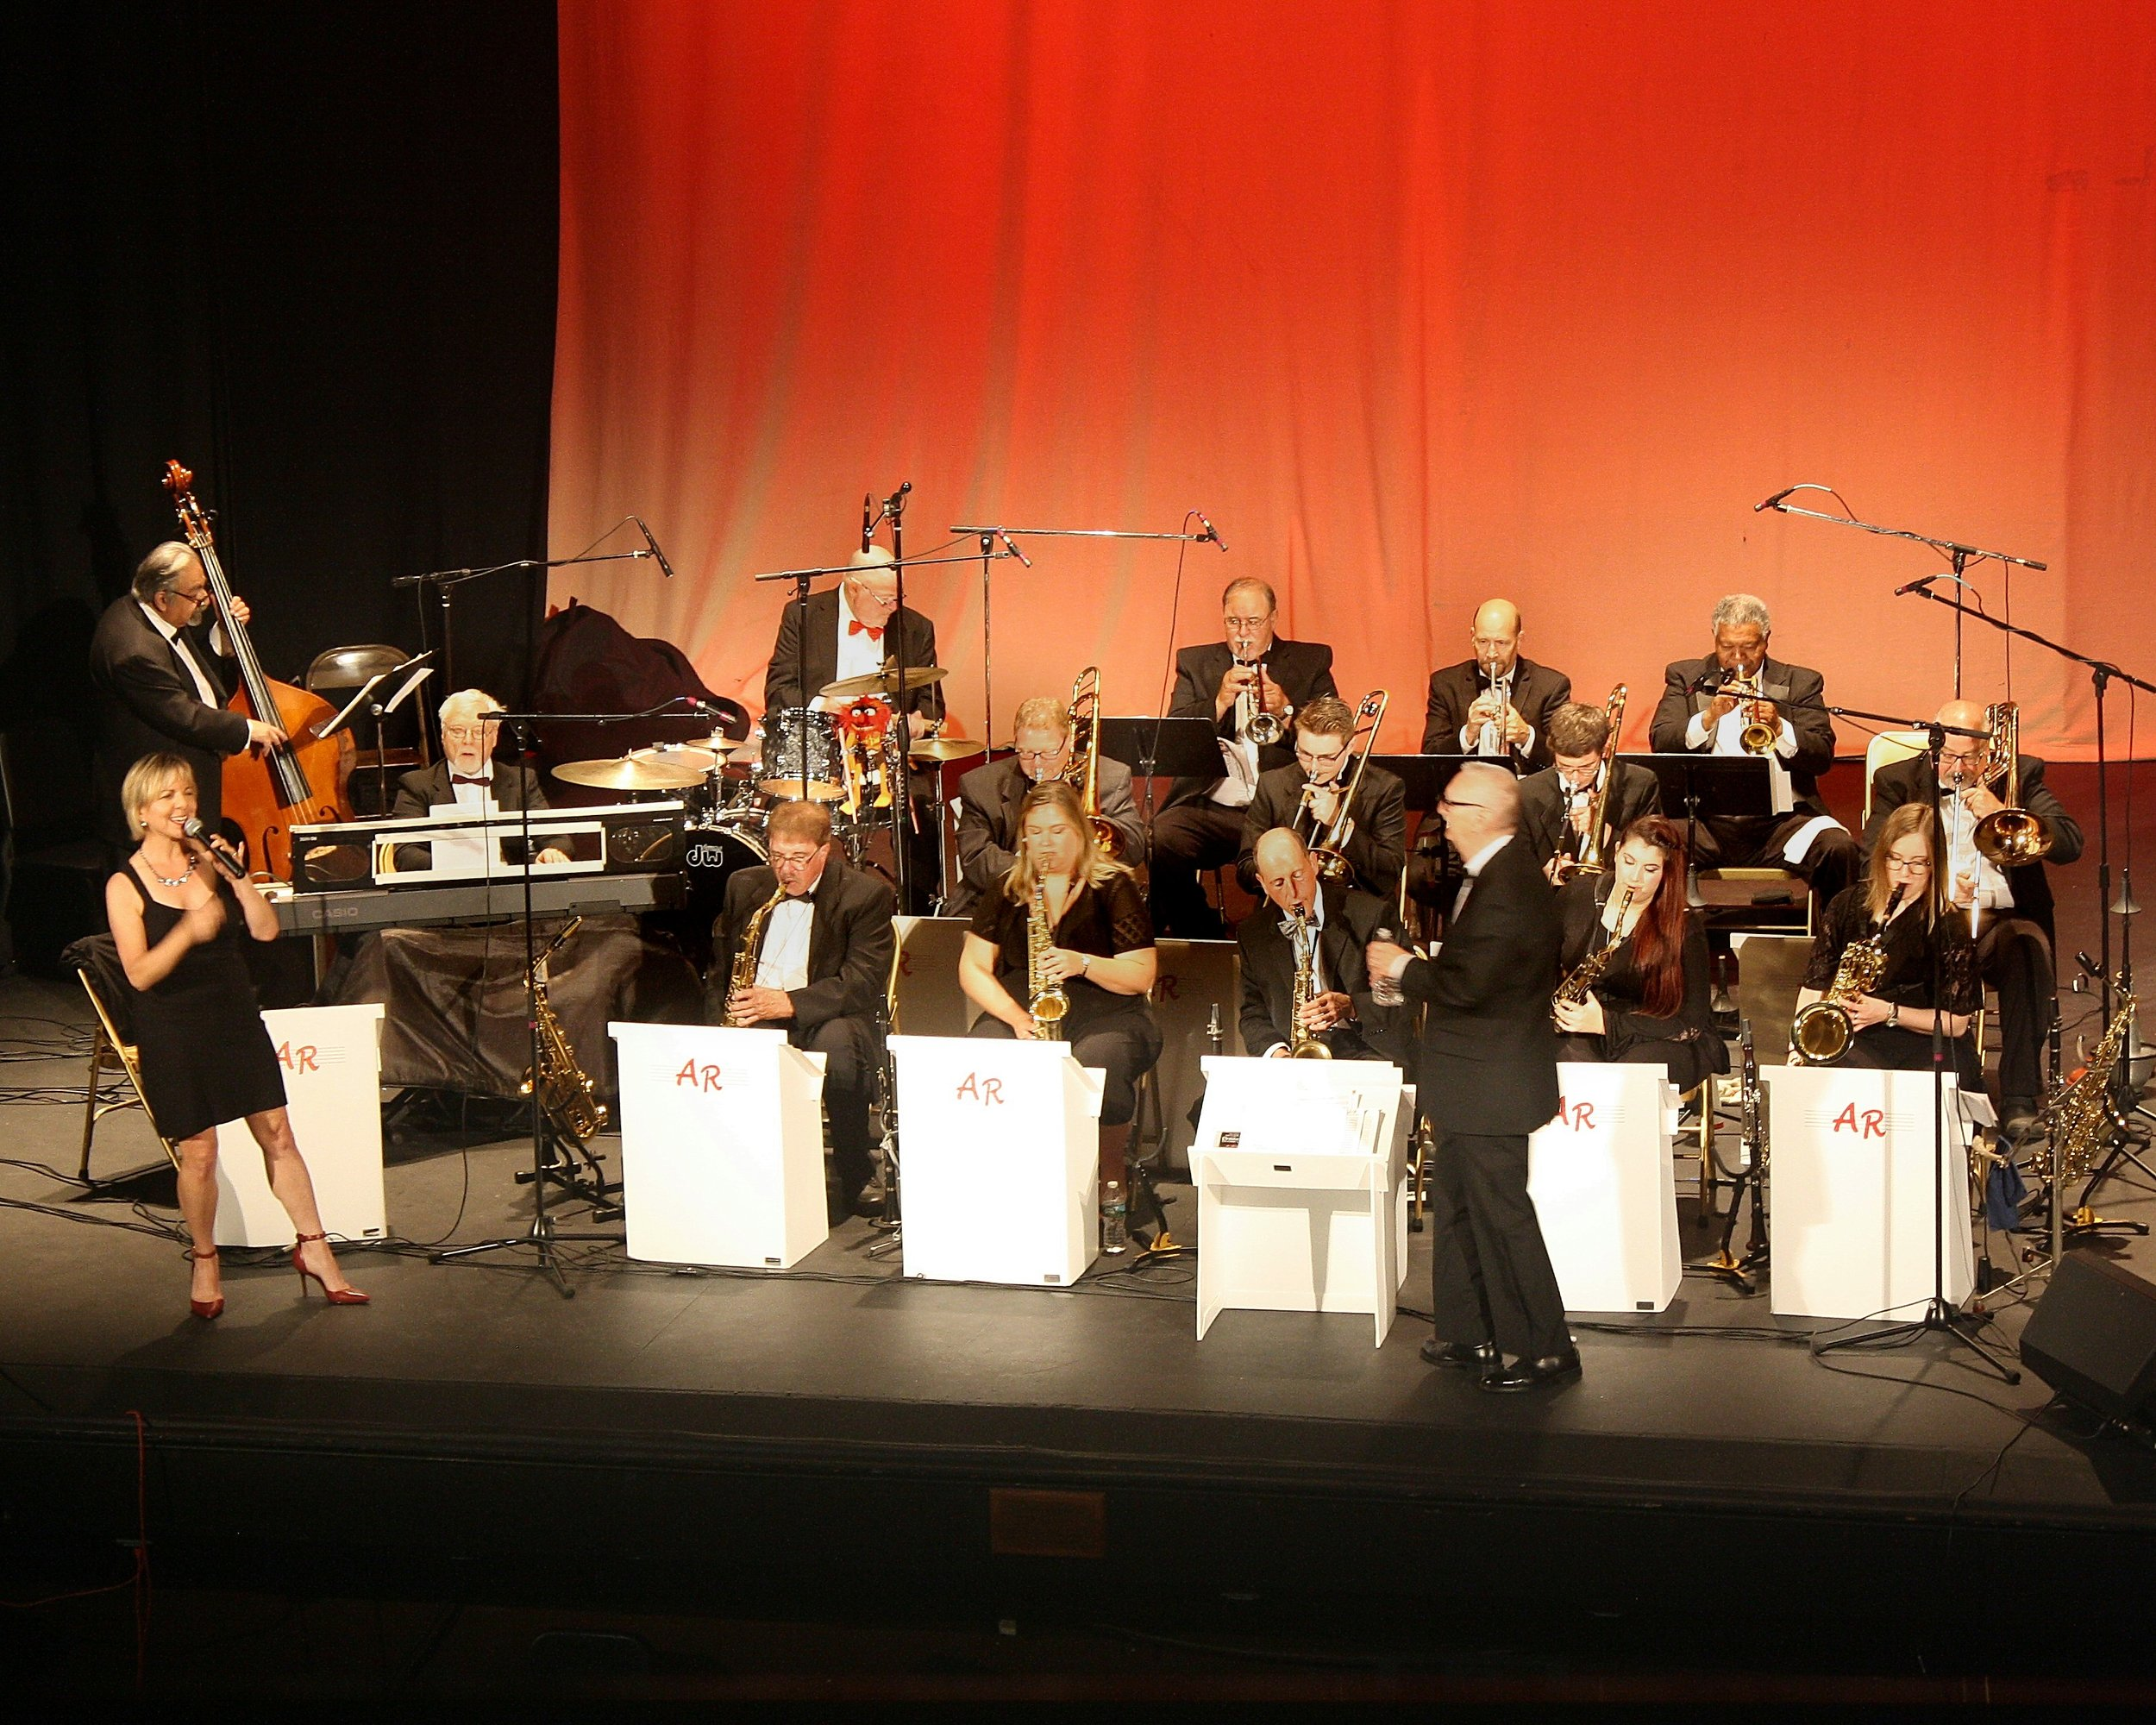 Big band performing in concert.